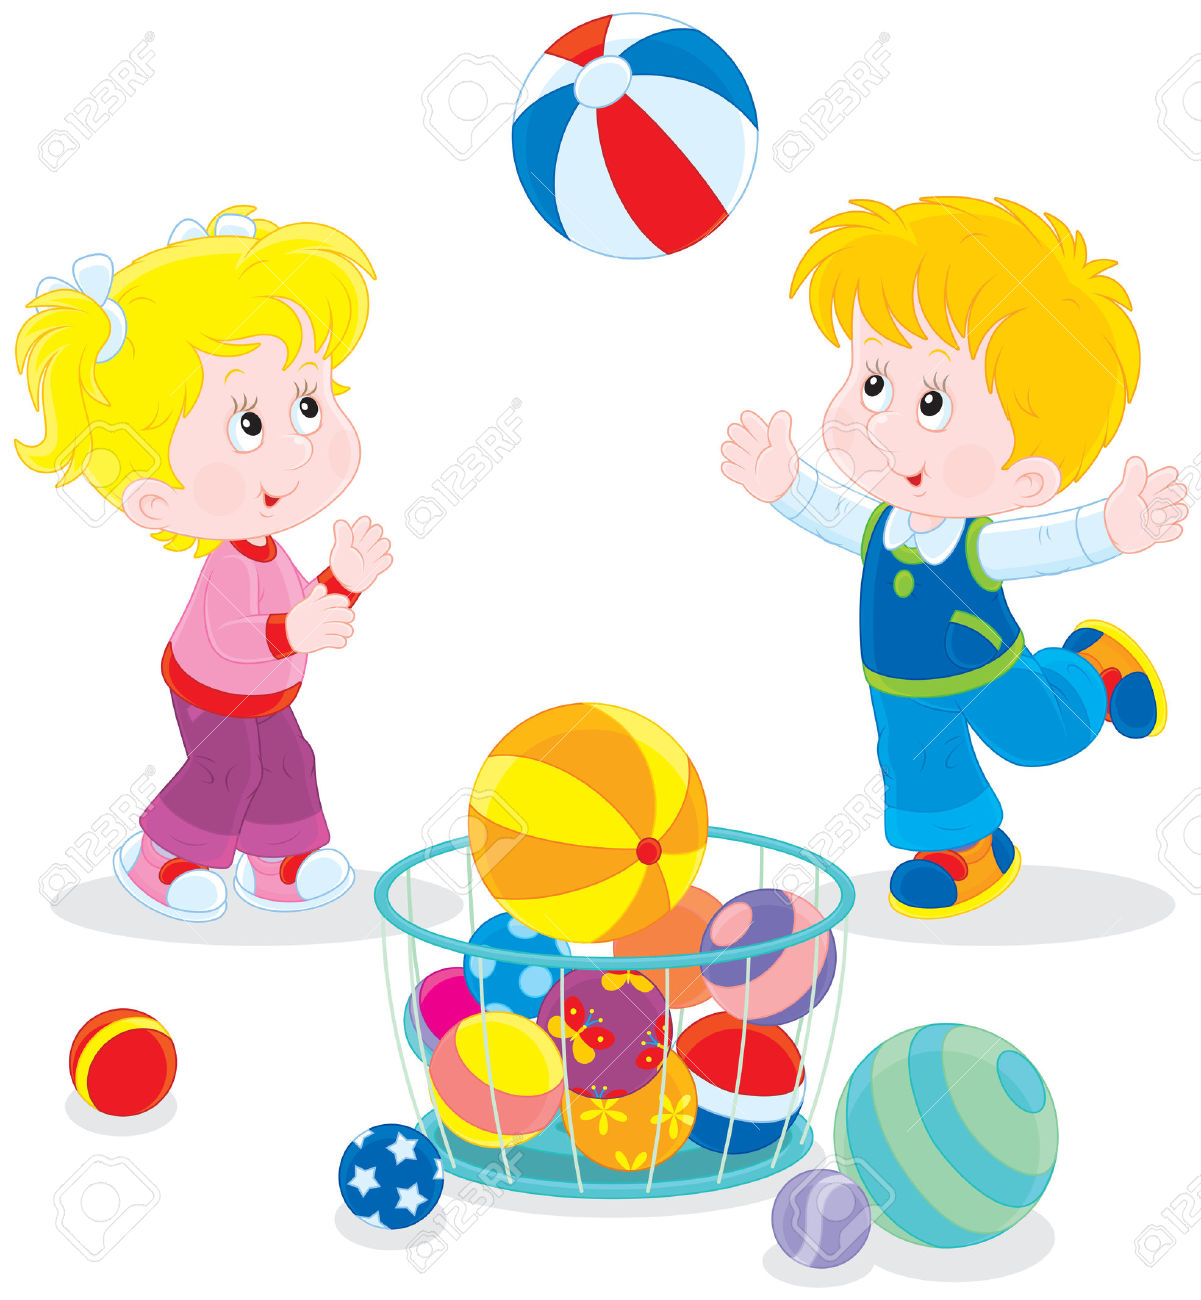 ball games clip. Game clipart outside game